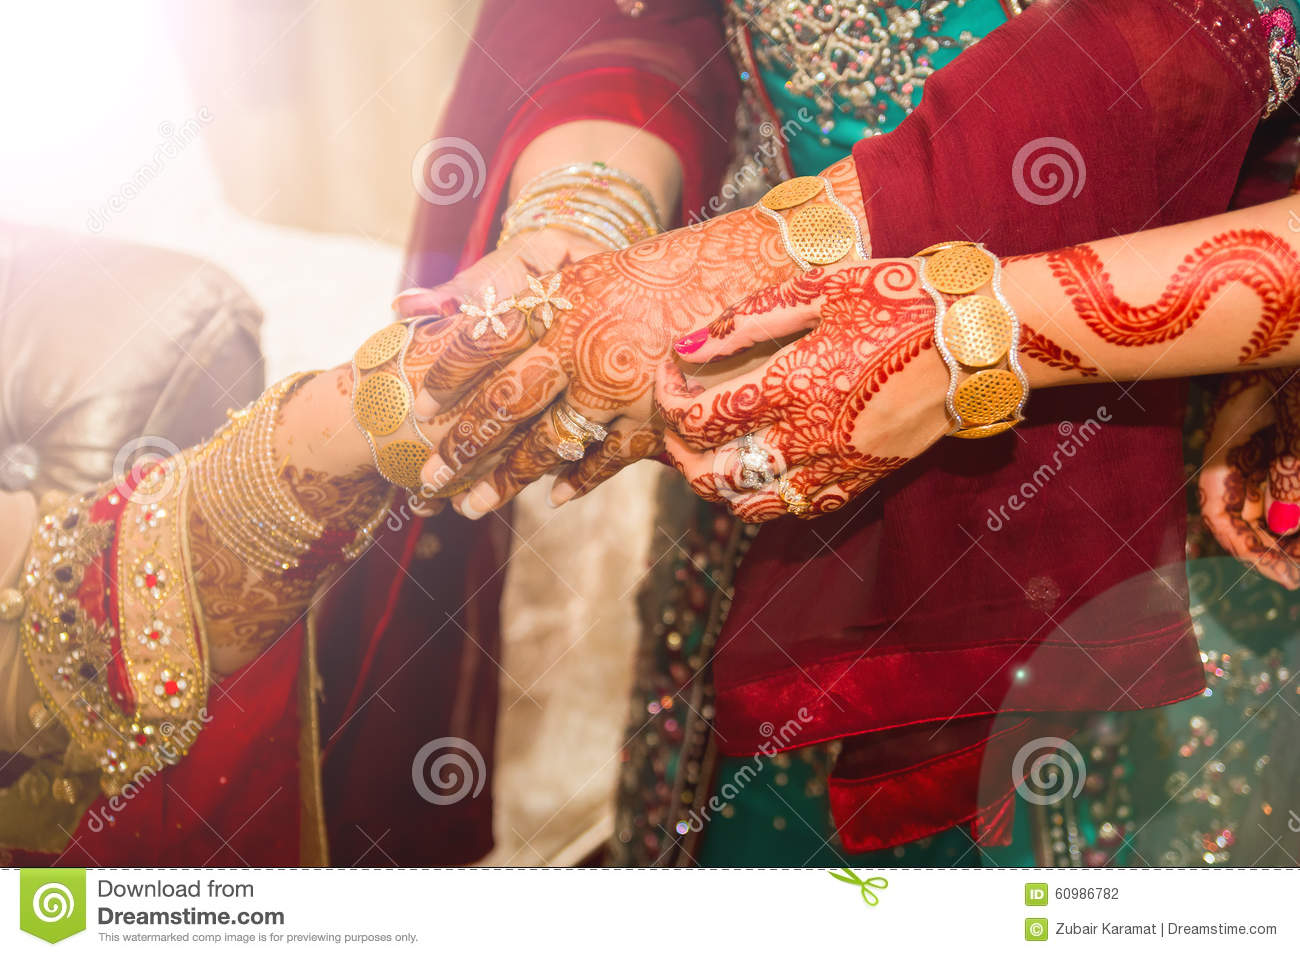 Indian Bride Receiving Gold Bangles As A Wedding Gift By The Grooms Mother And Sister Hands Showing Tattoos And Diamond Rings